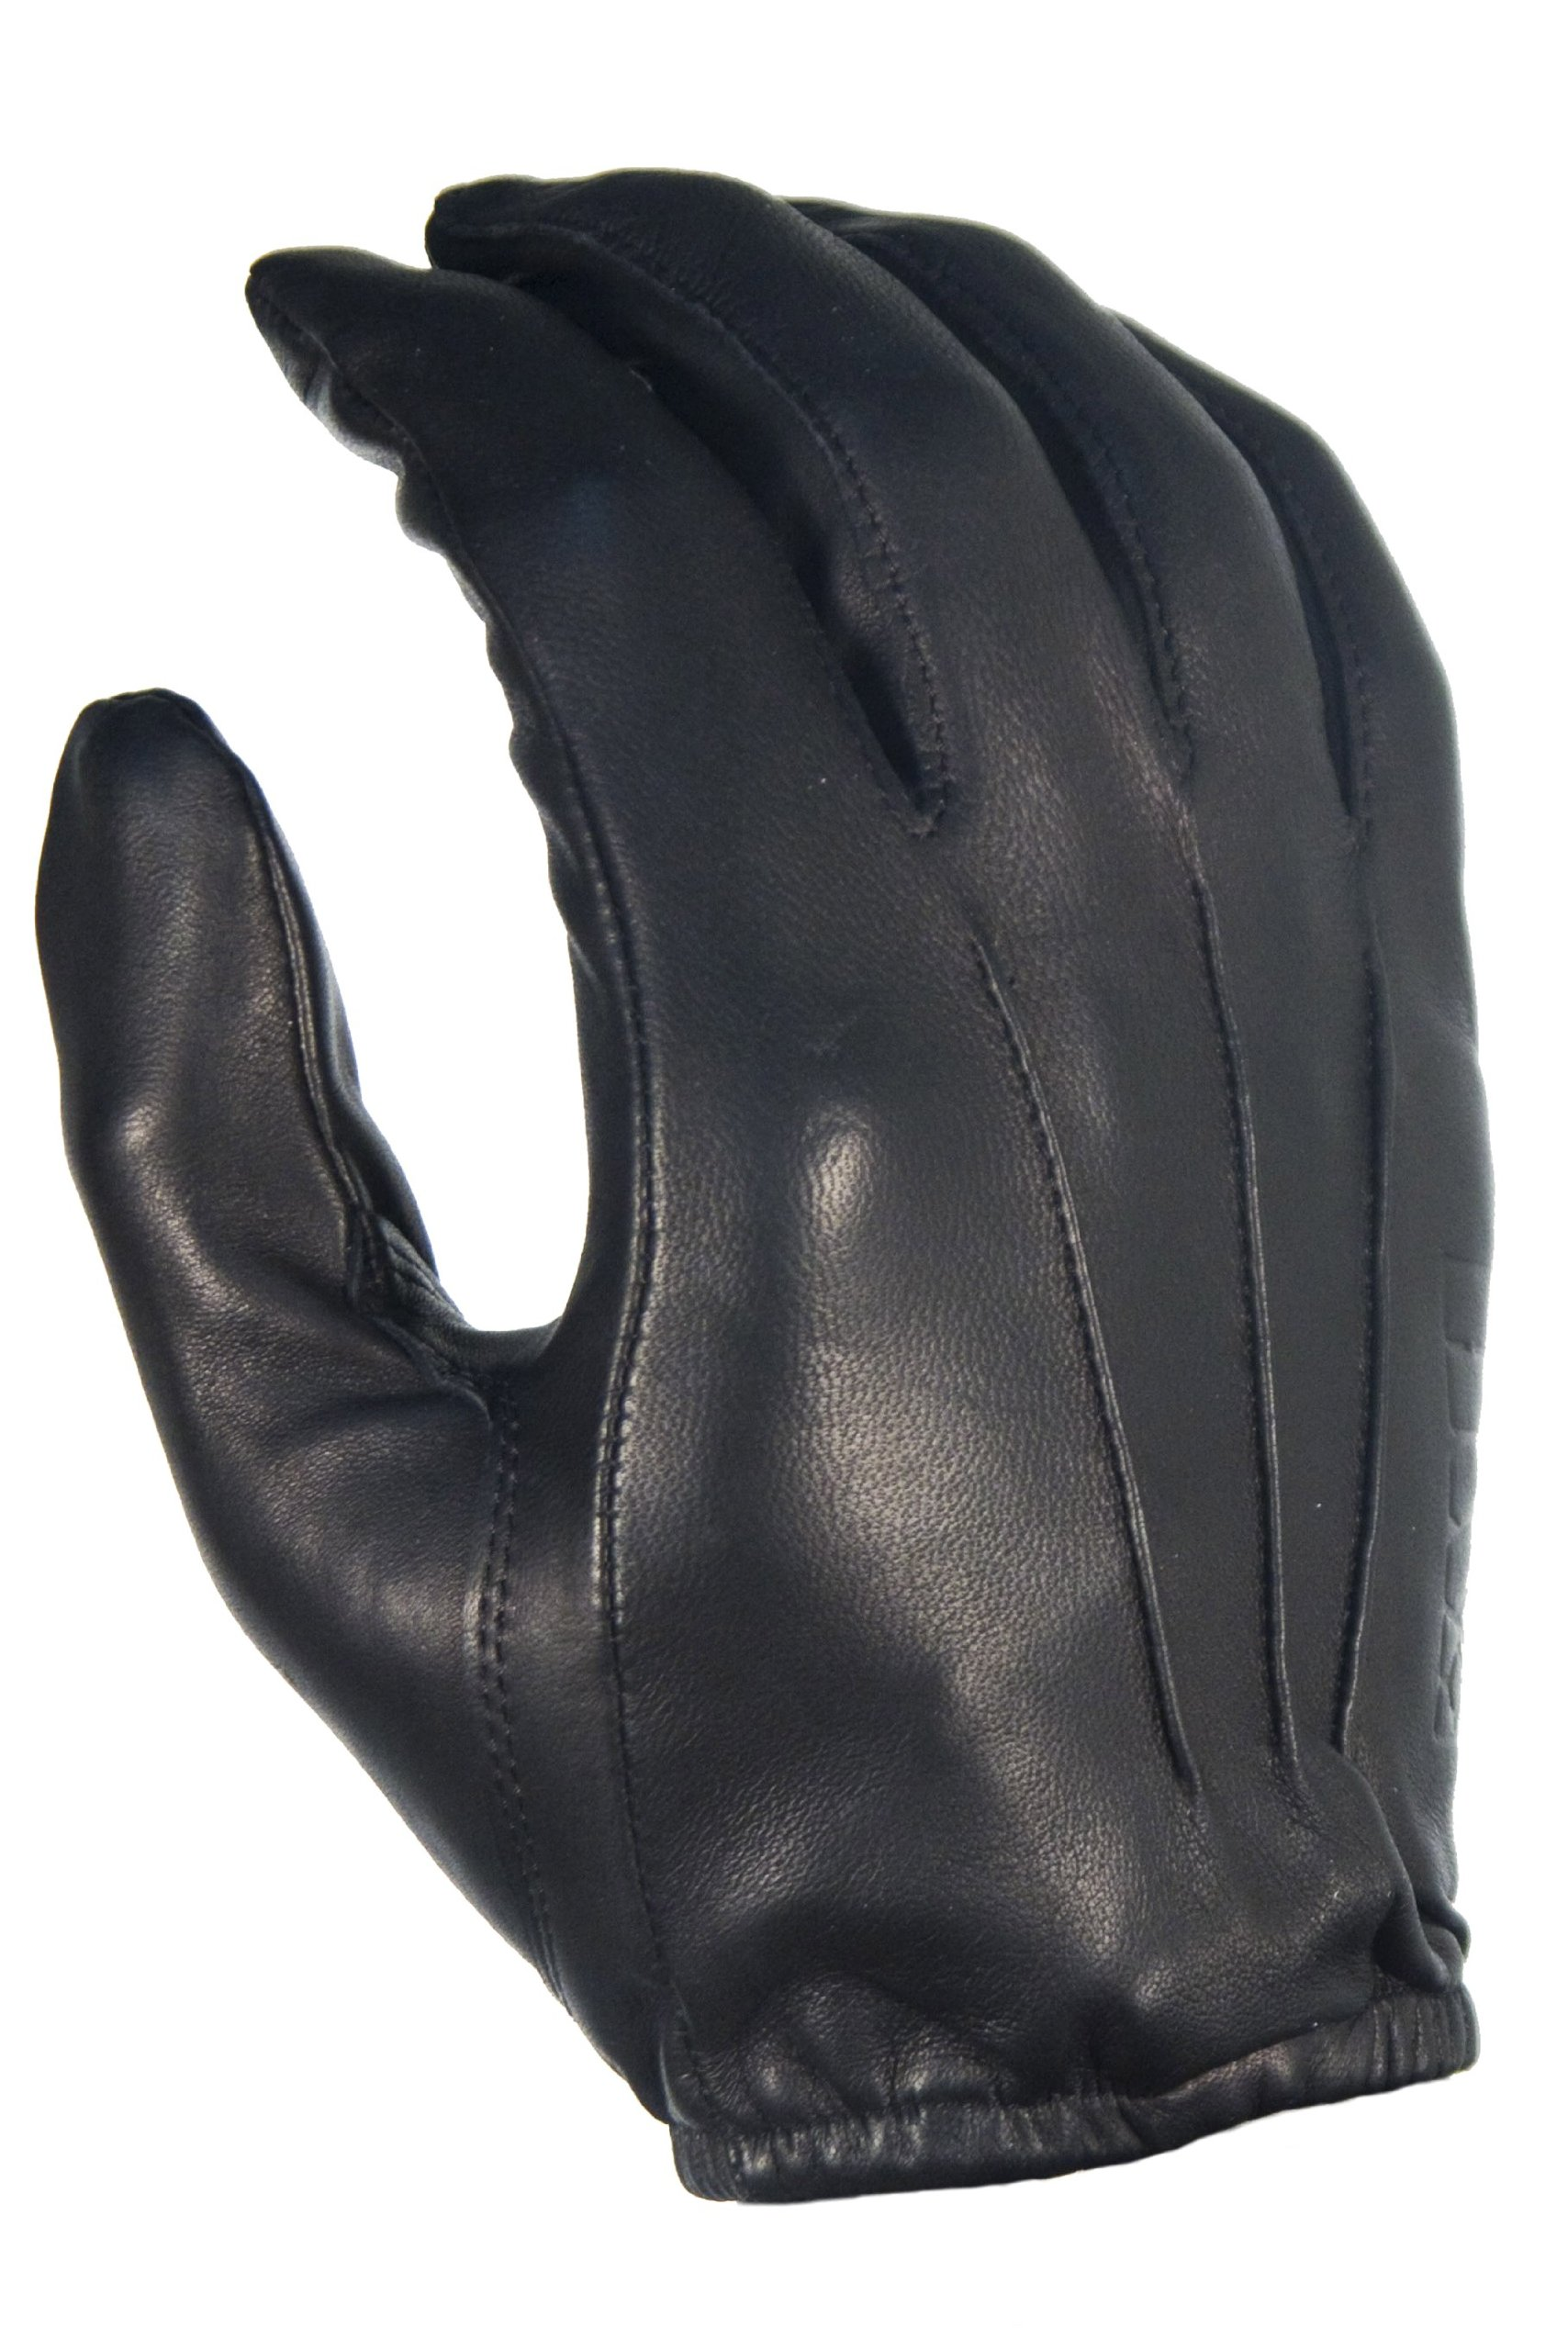 HWI Gear Hairsheep Duty Glove, Medium, Black by ACK, LLC